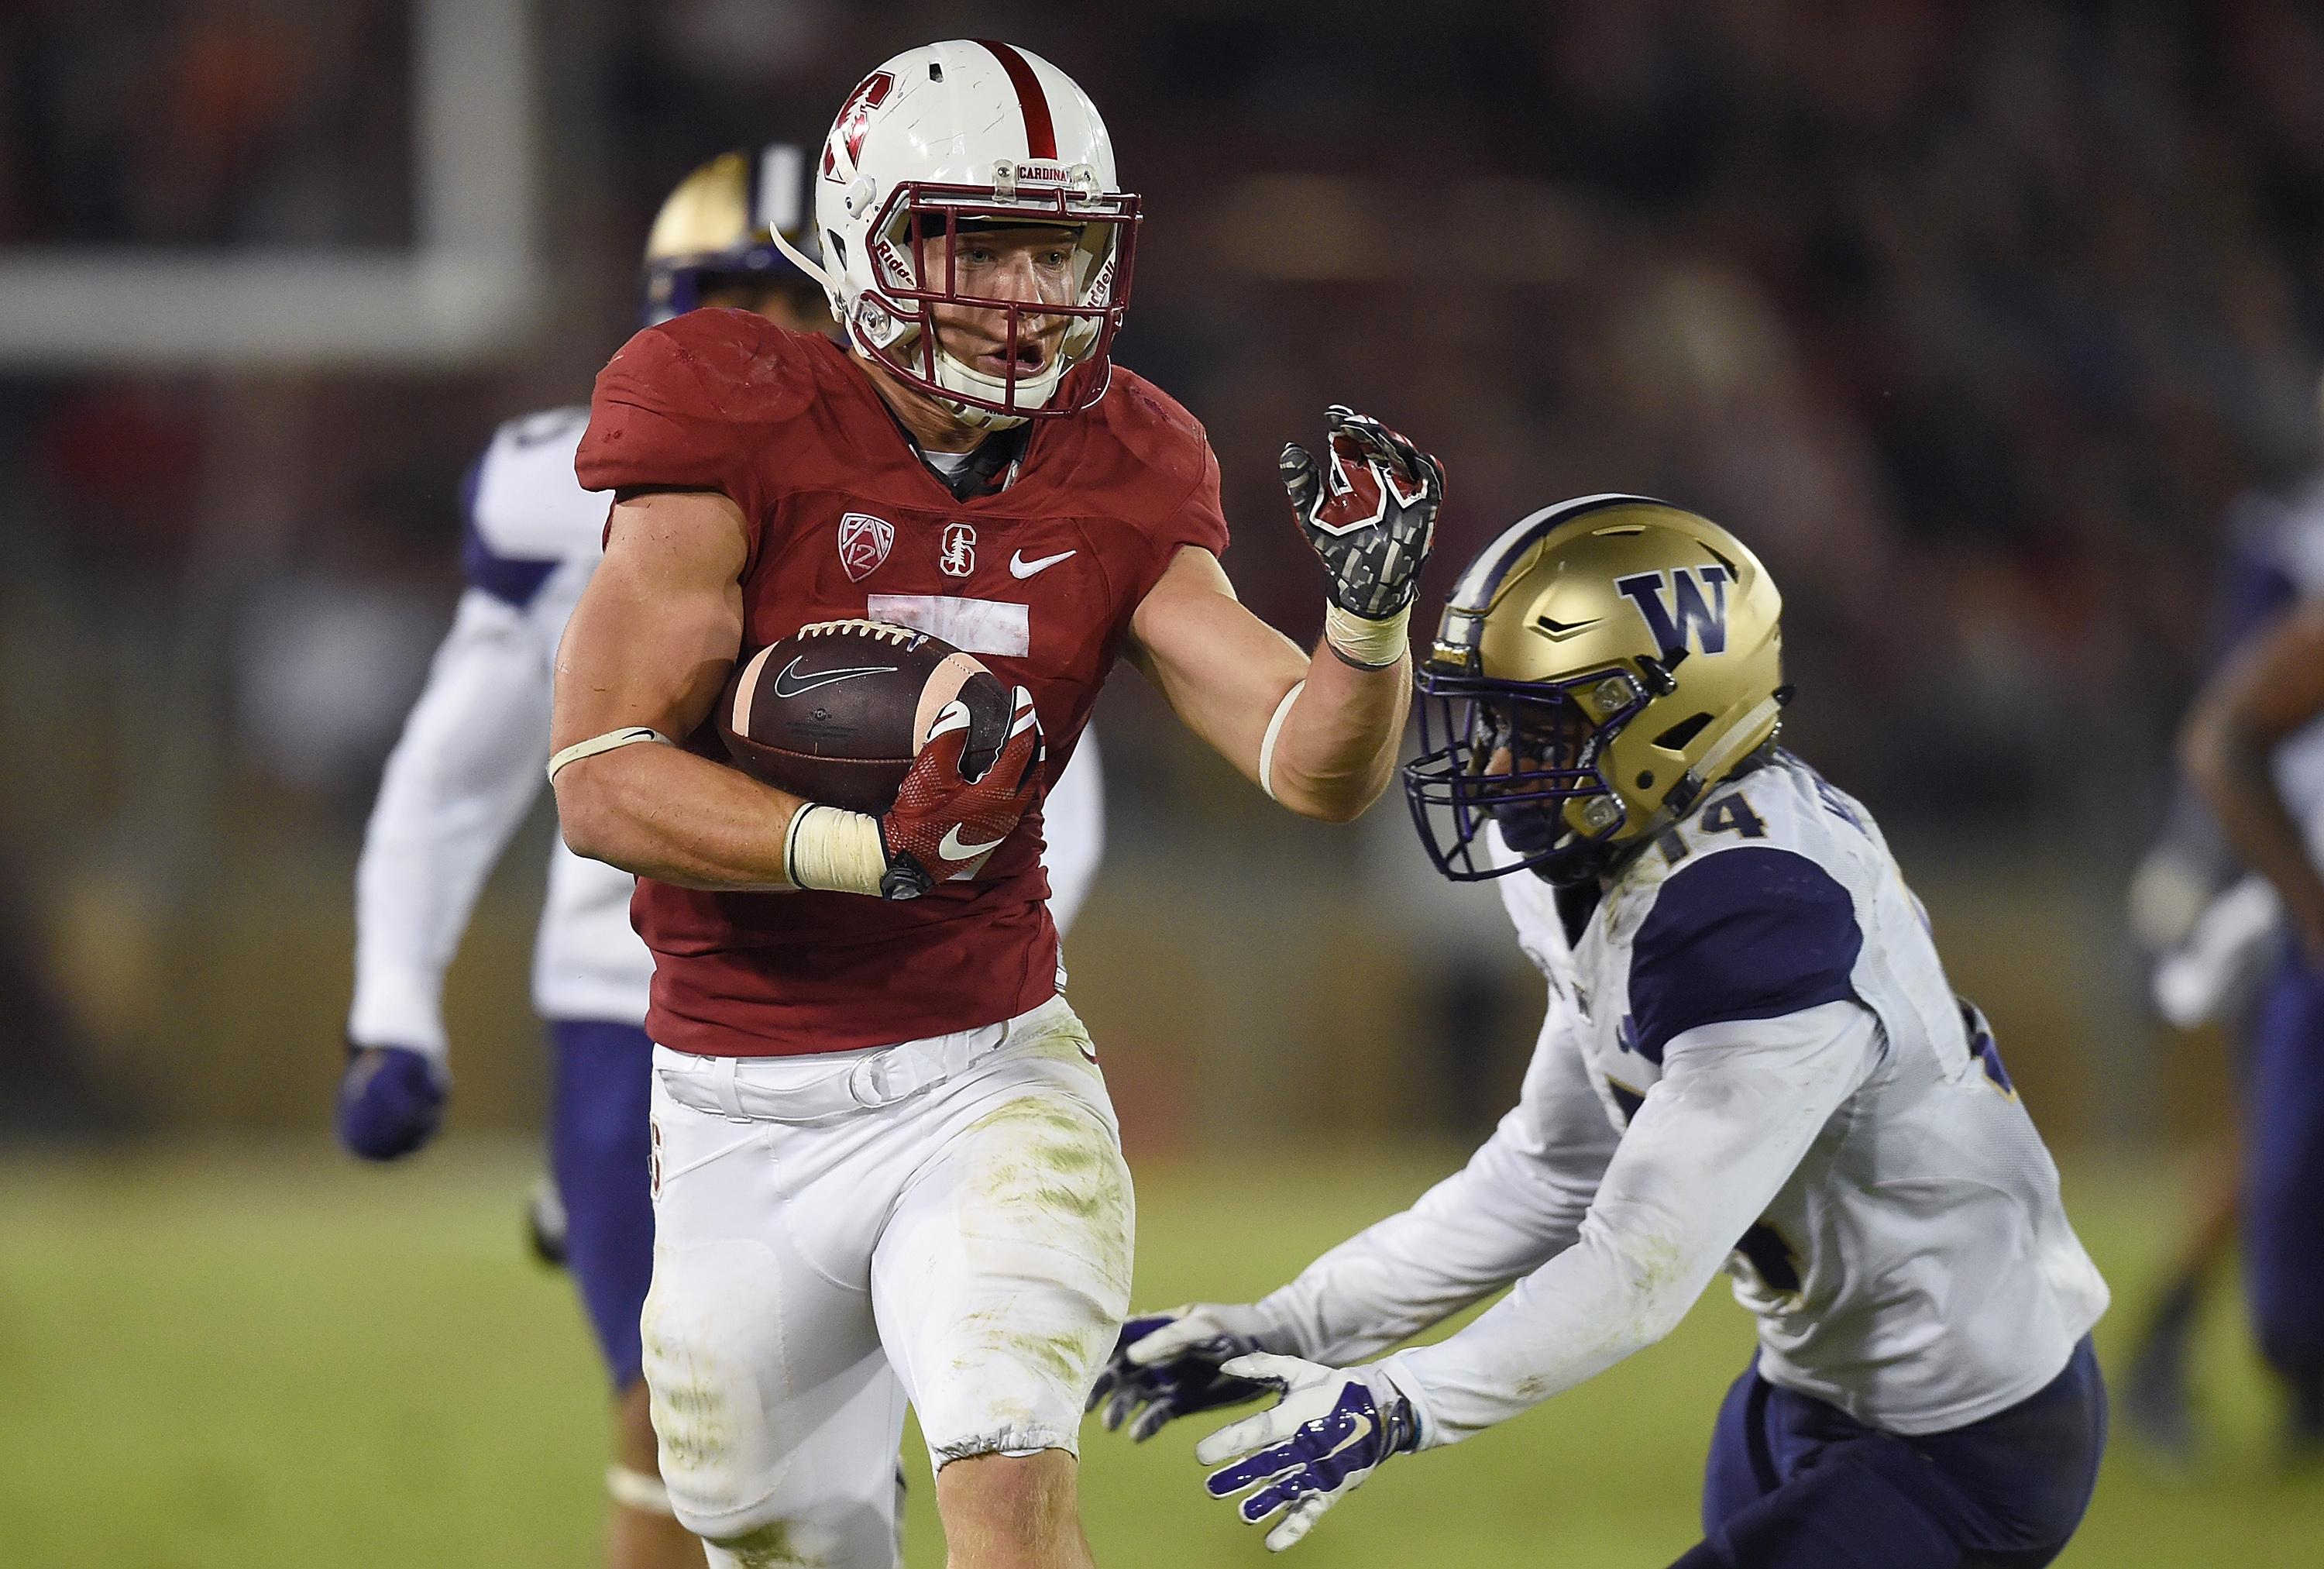 Christian McCaffrey #5 of the Stanford Cardinal's scores a touchdown breaking the tackle of JoJo McIntosh #14 of the Washington Huskies in the third quarter of an NCAA football game at Stanford Stadium on October 24, 2015 in Stanford, California. (Photo by Thearon W. Henderson/Getty Images)